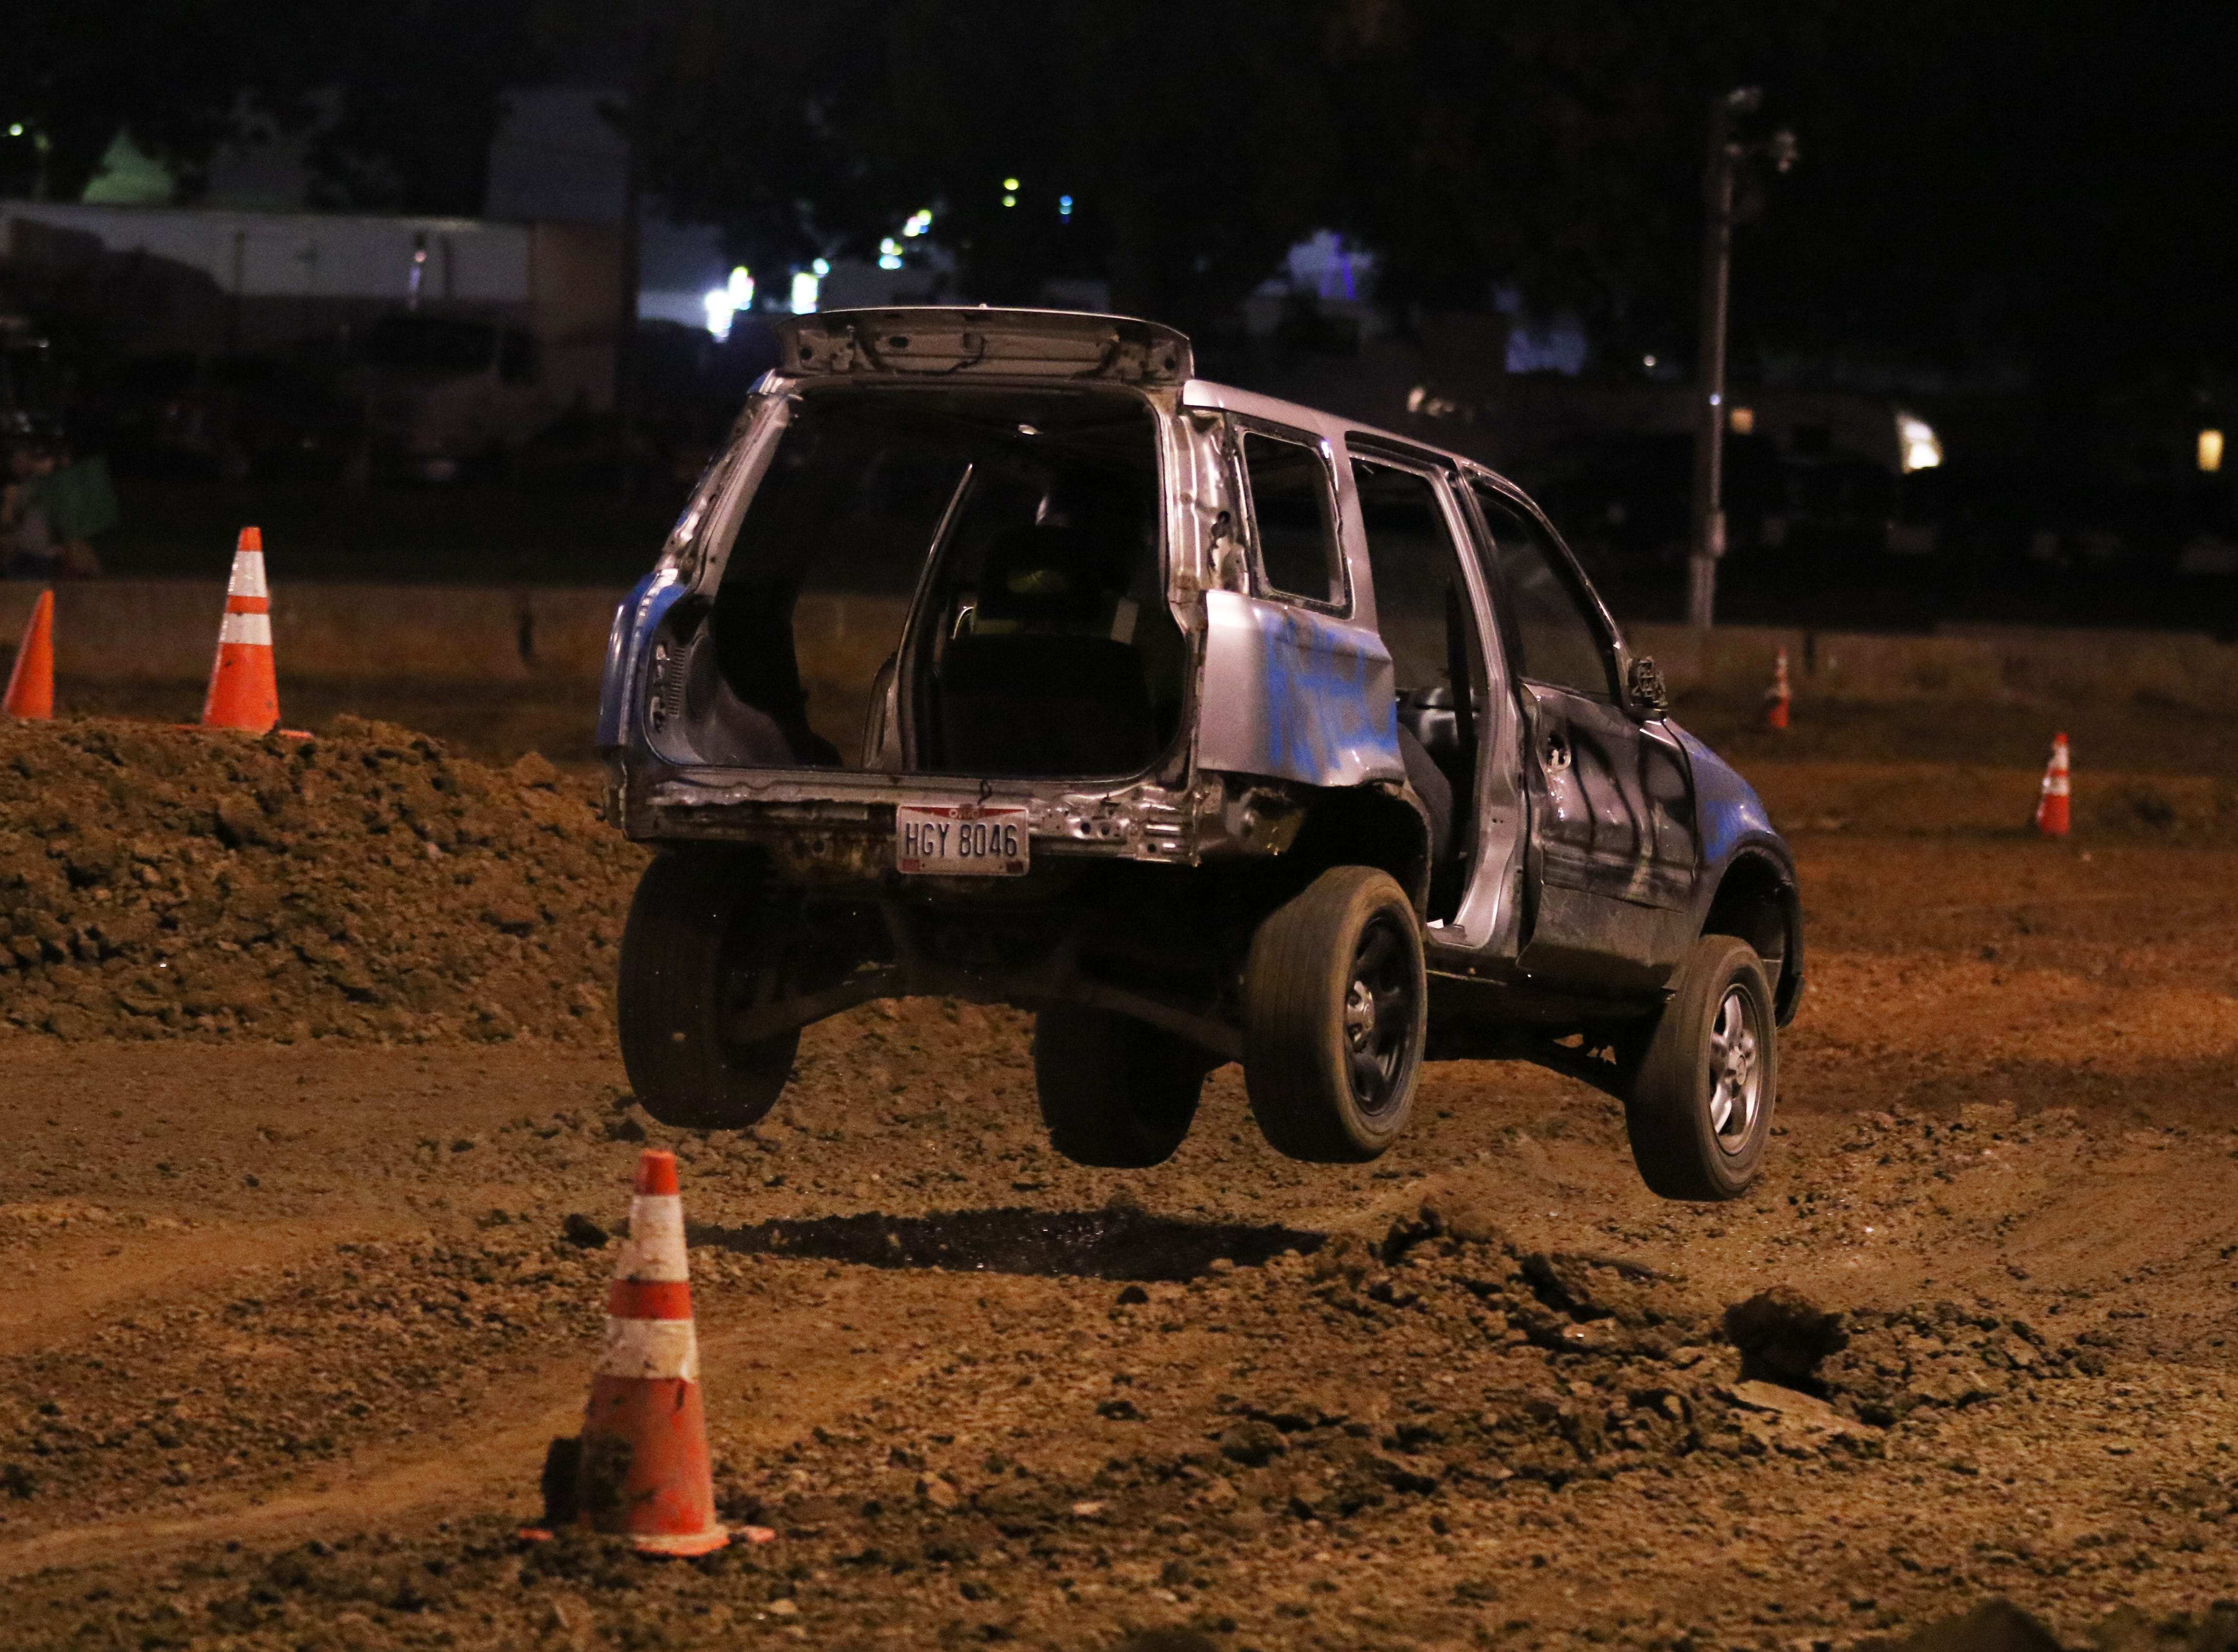 The Coshocton County Fair hosted a rough truck competition Wednesday night. More than 70 vehicles of various shapes, sizes and states of disrepair took part.